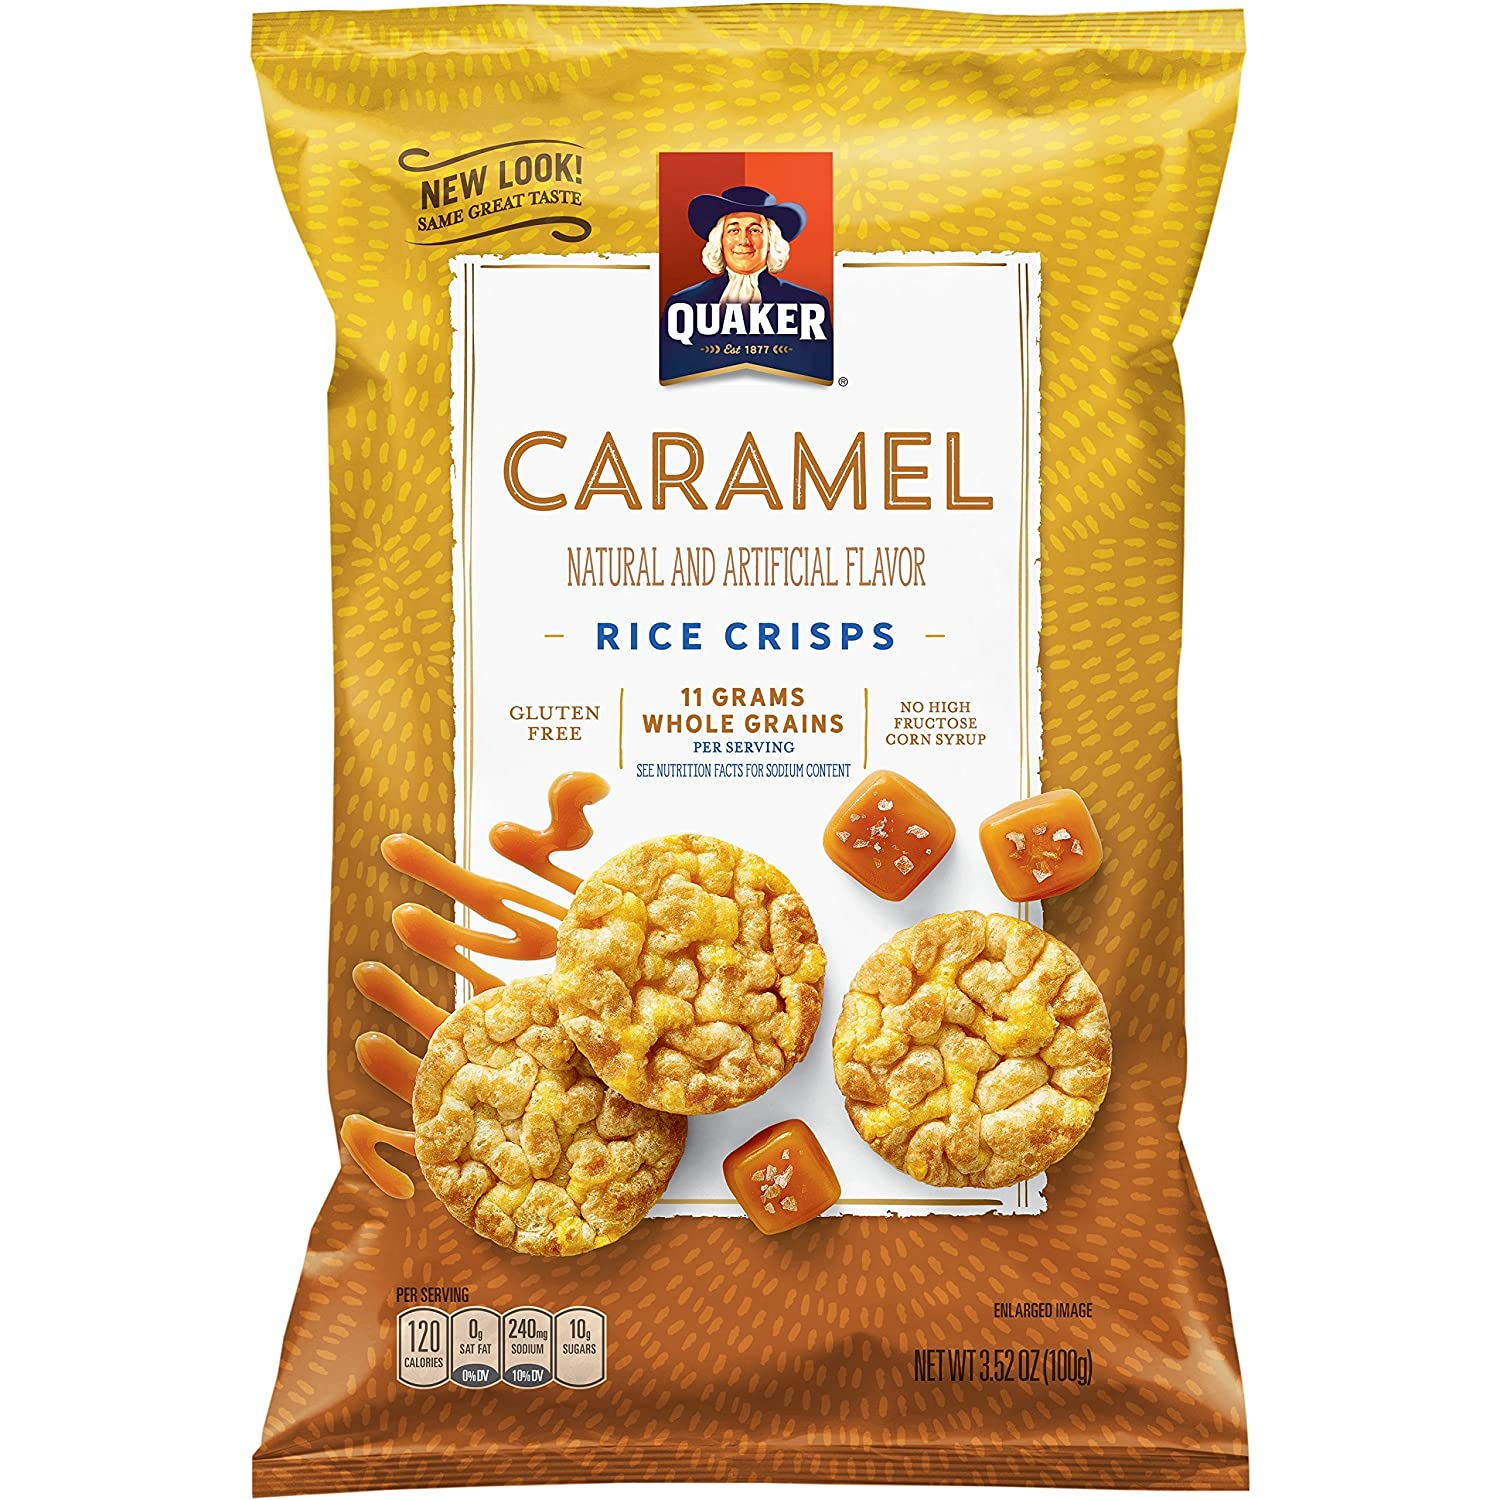 Quaker Rice Cake Caramel Corn, 3.52 oz Bag